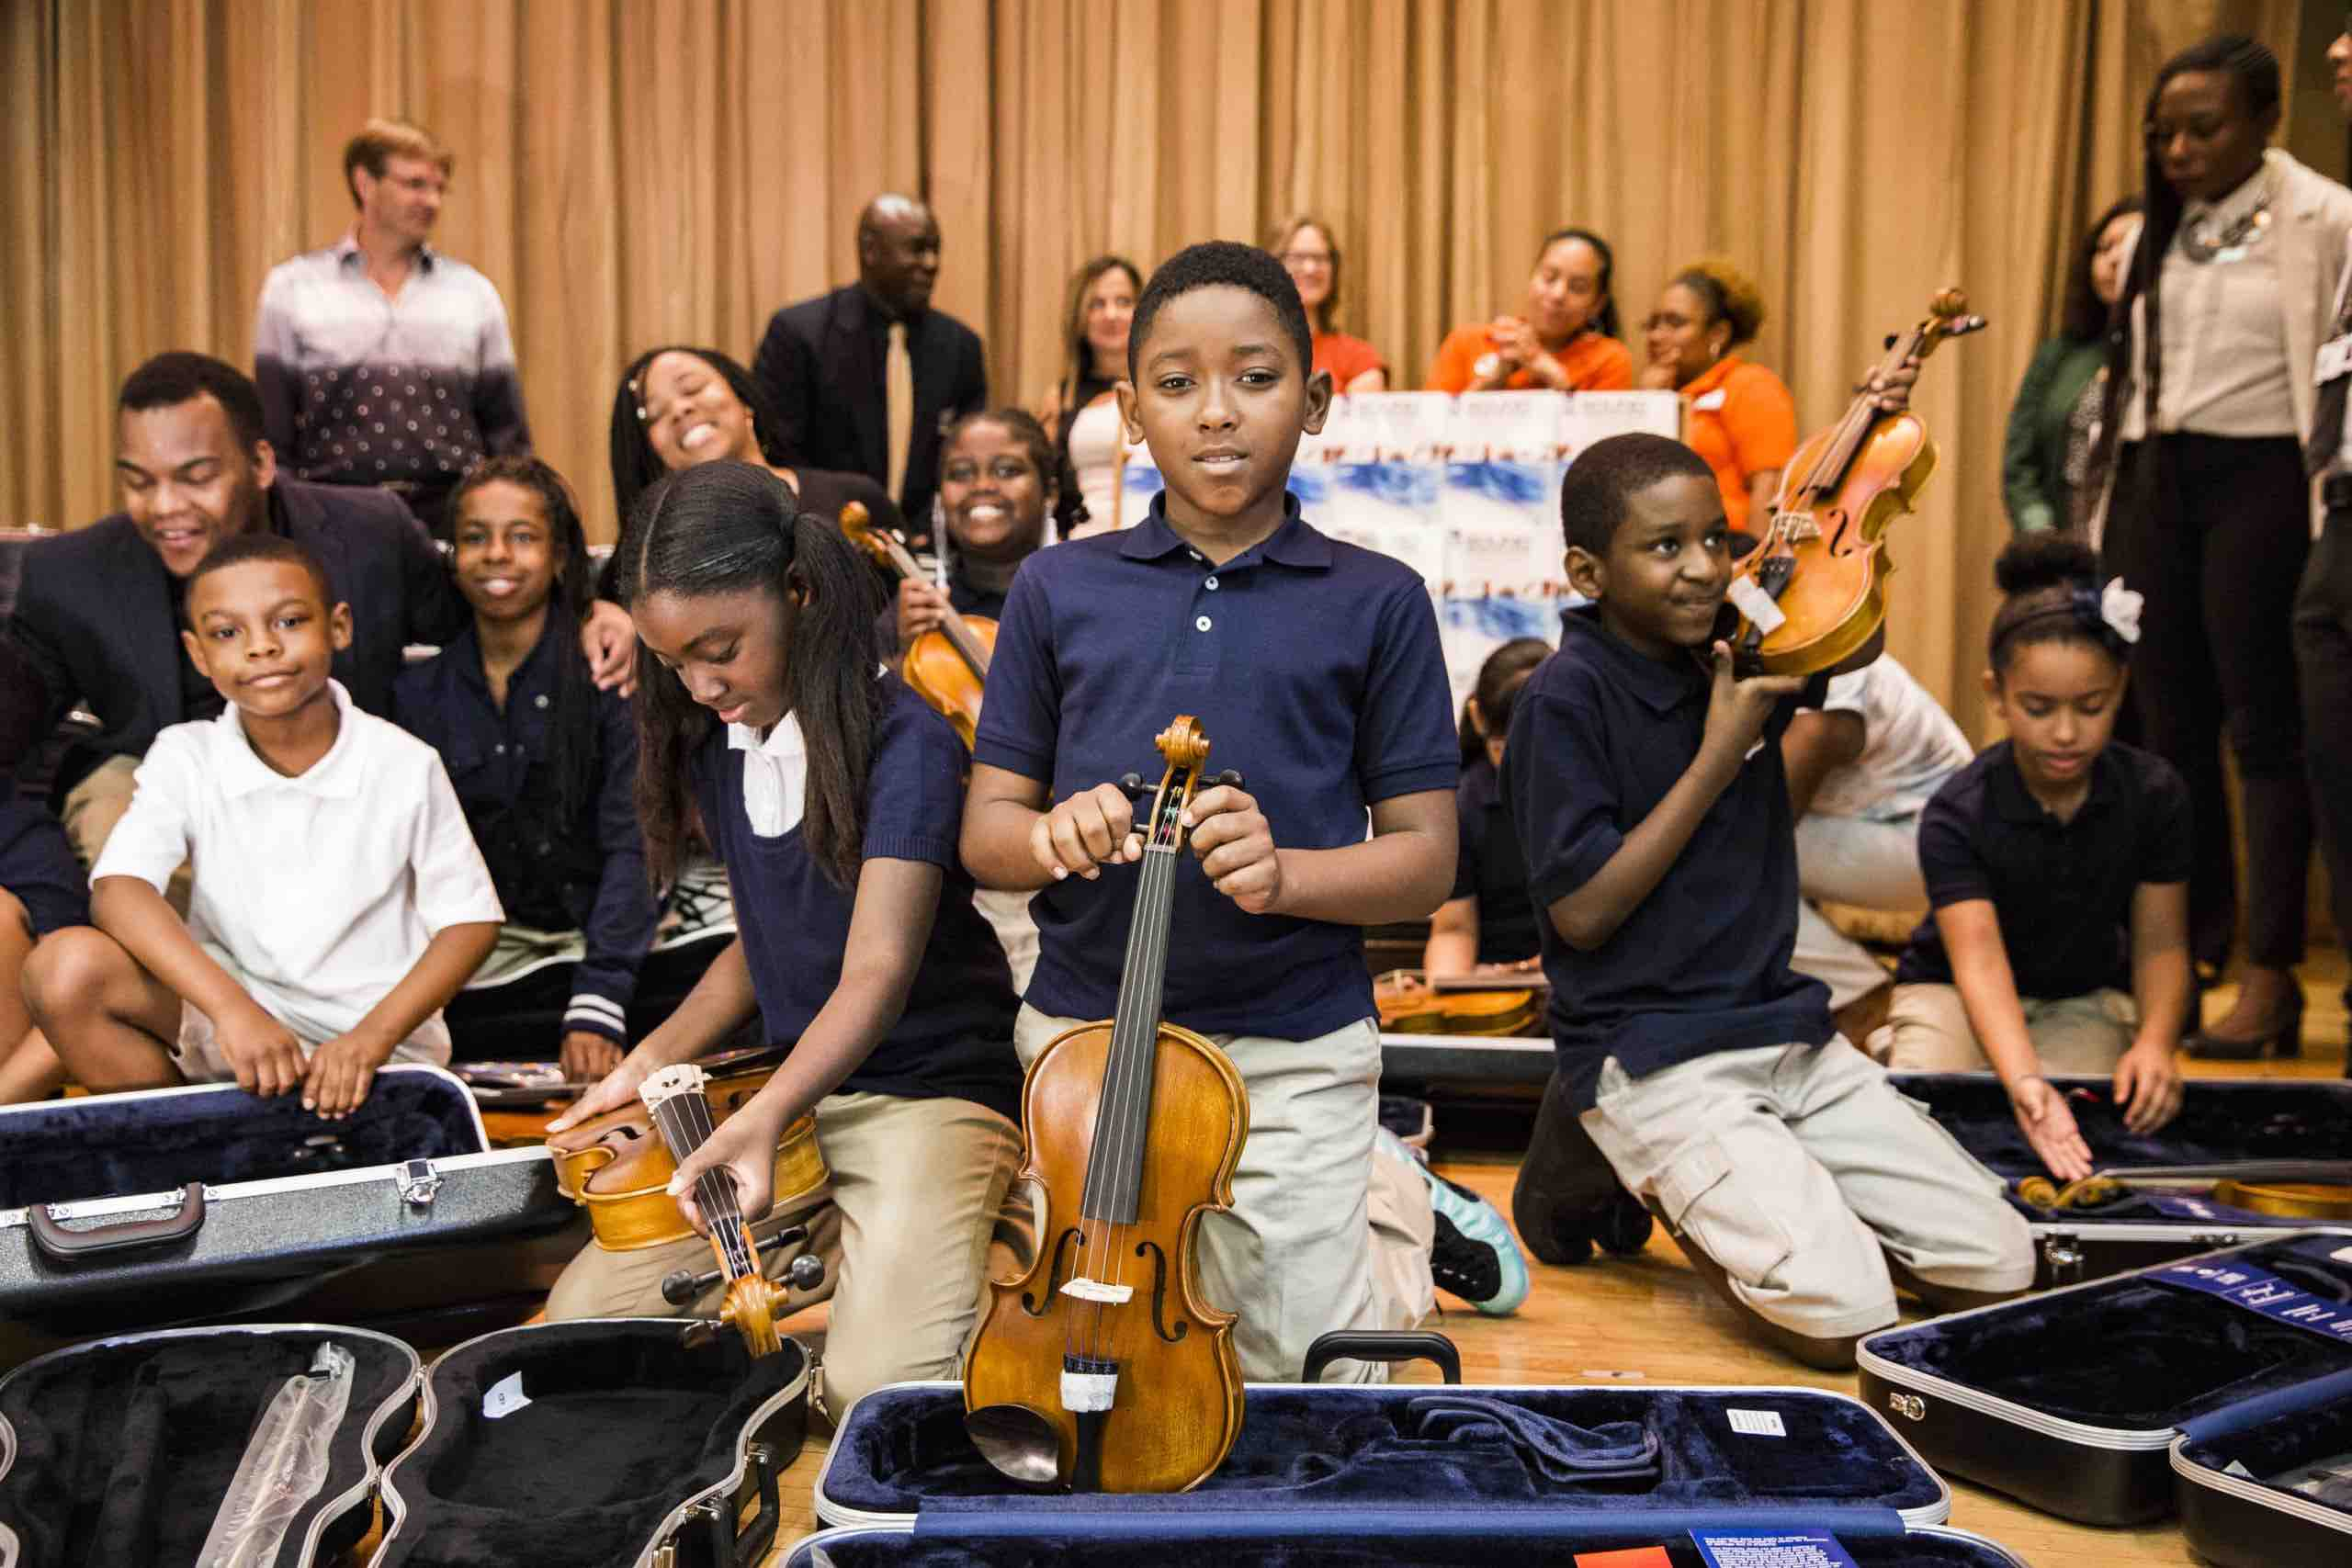 Save The Music gives music education grants in Newark